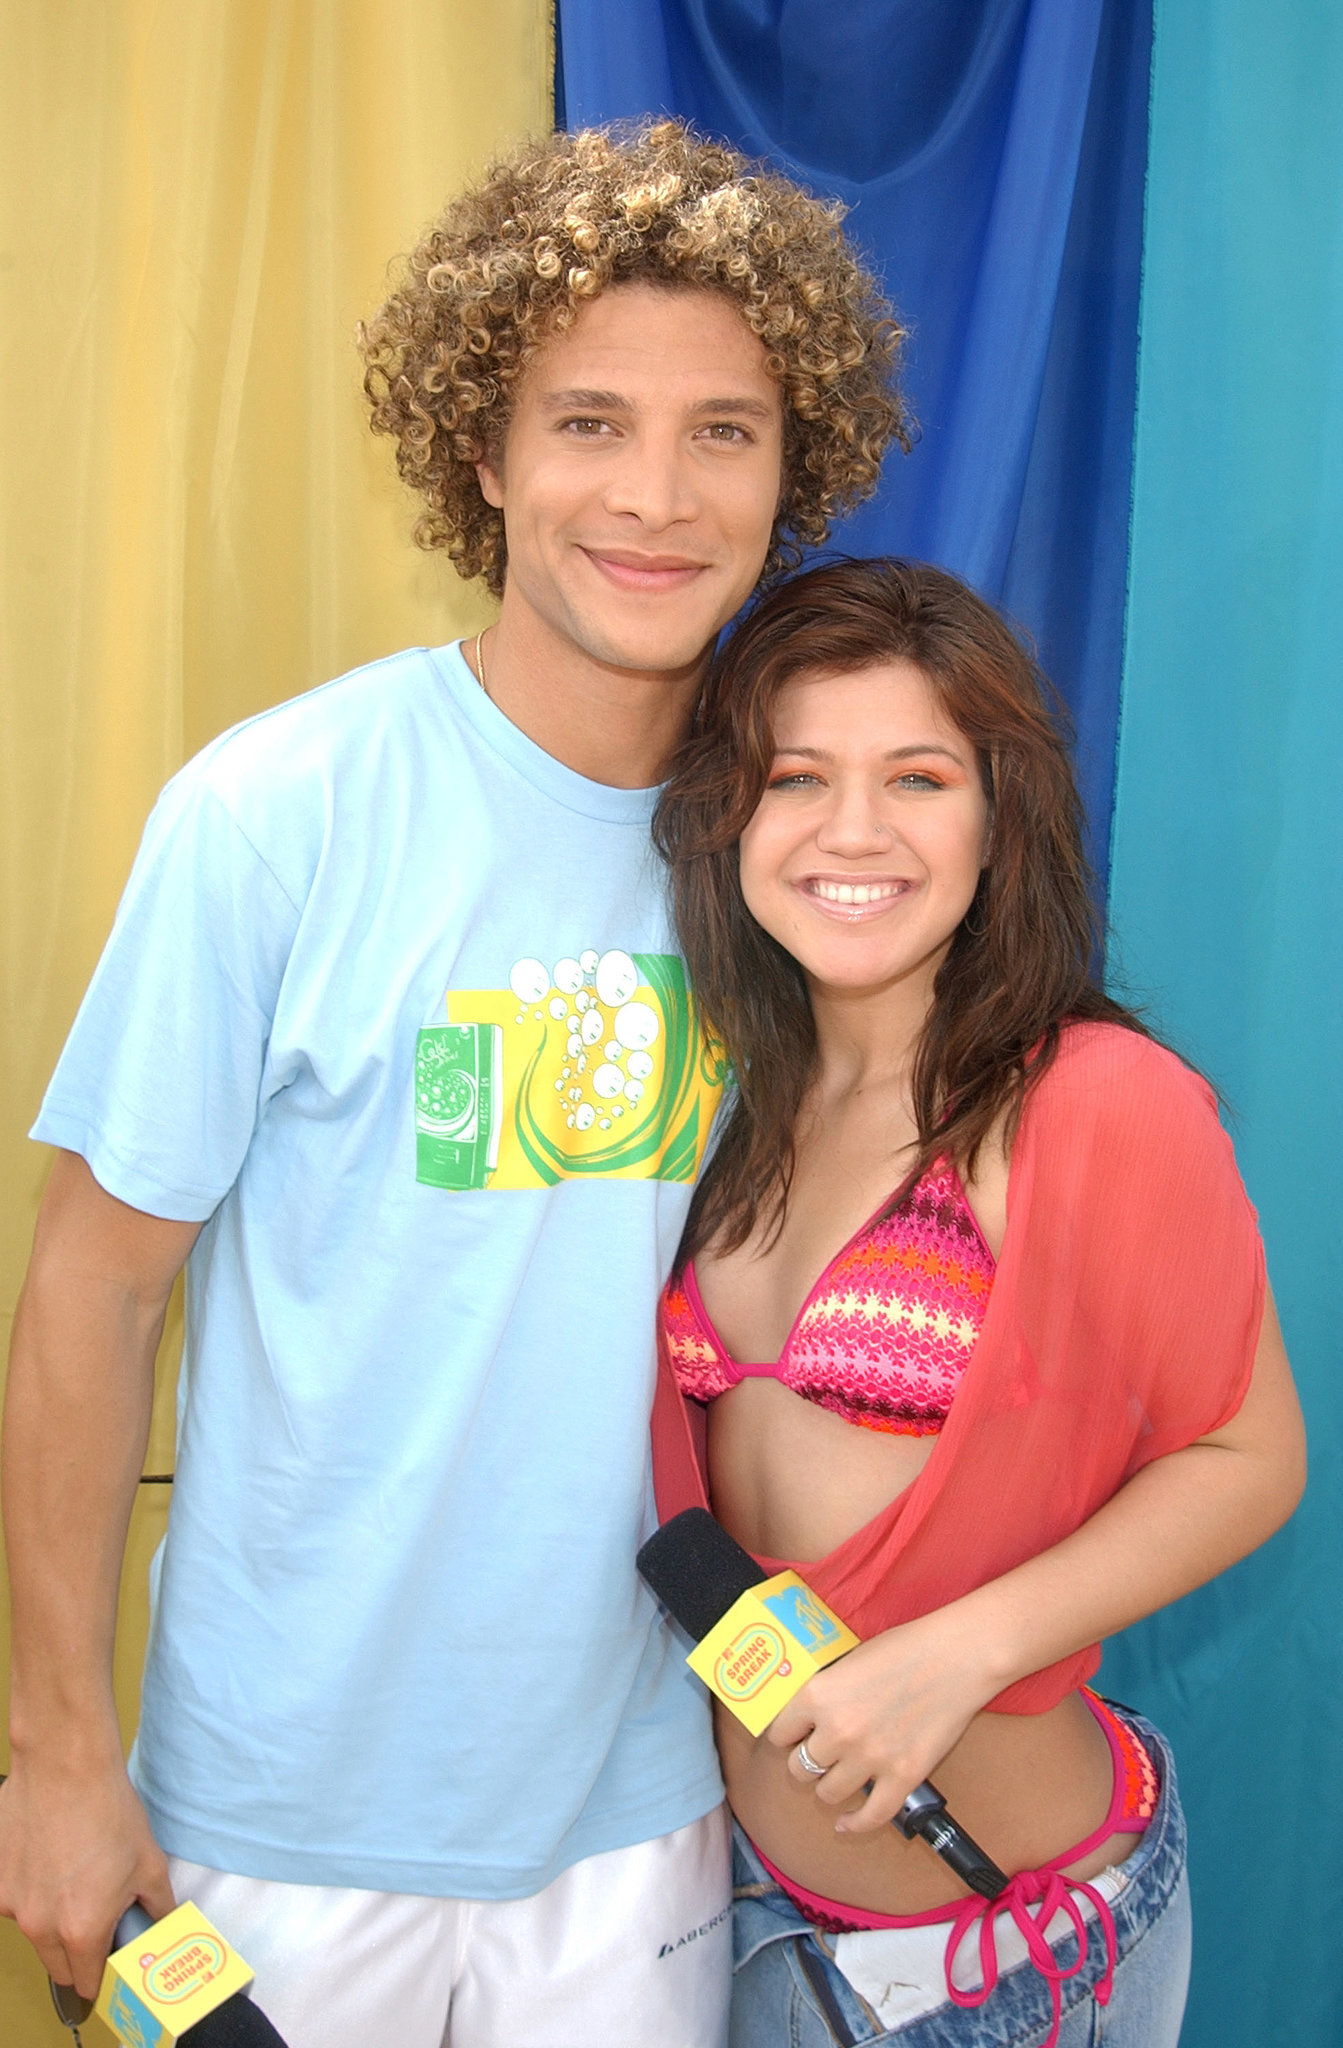 2003: American Idol finalists Justin Guarini and Kelly Clarkson perform in Miami.